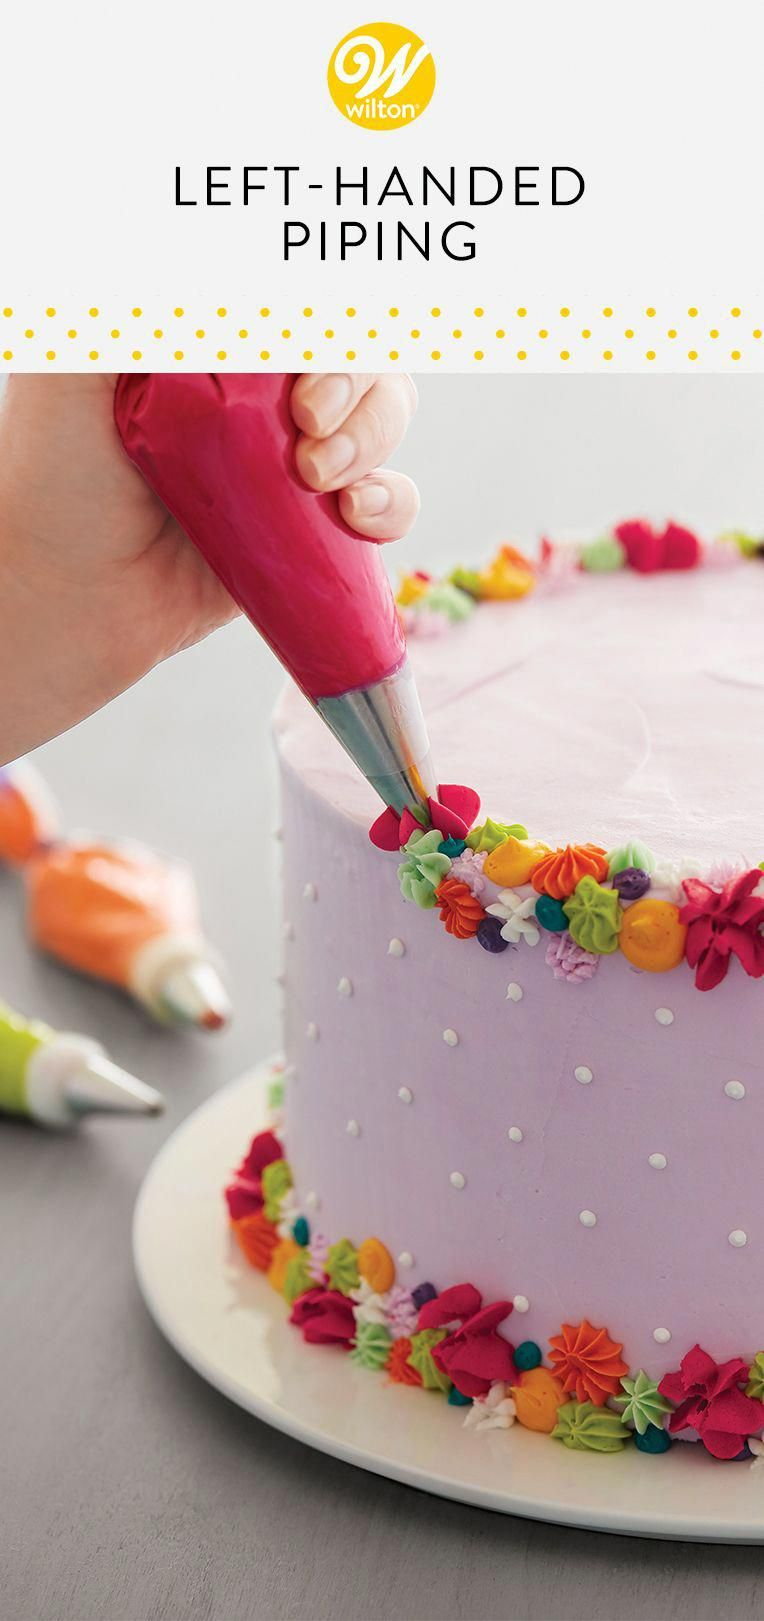 Are you left-handed? Here are some tips and tricks for left-handed cake decorators to ensure your cakes come out just as beautifully as you want them to!